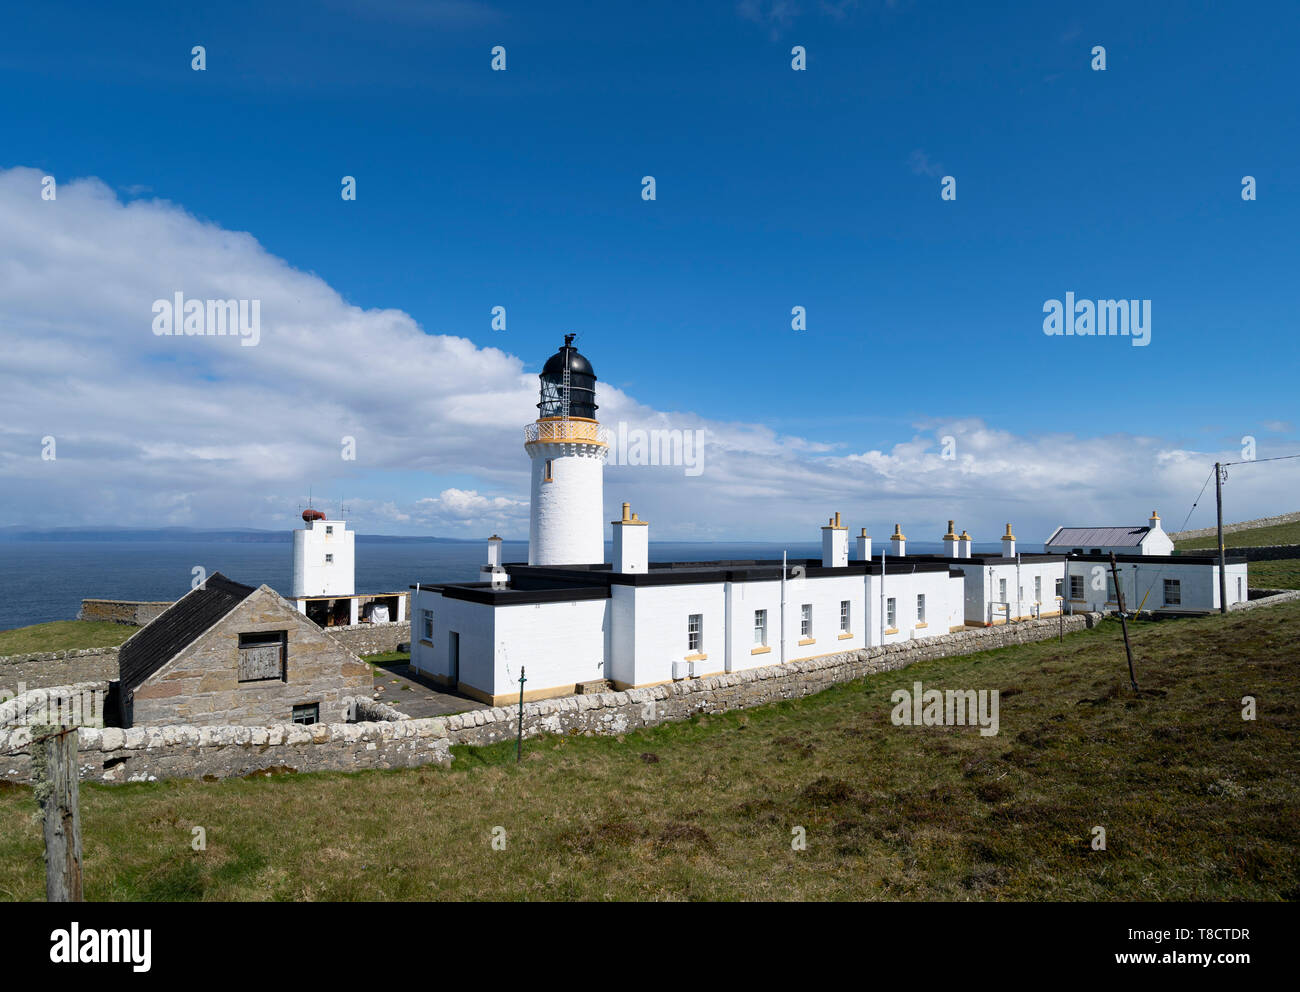 Dunnet Head lighthouse on the North Coast 500 scenic driving route in northern Scotland, UK - Stock Image